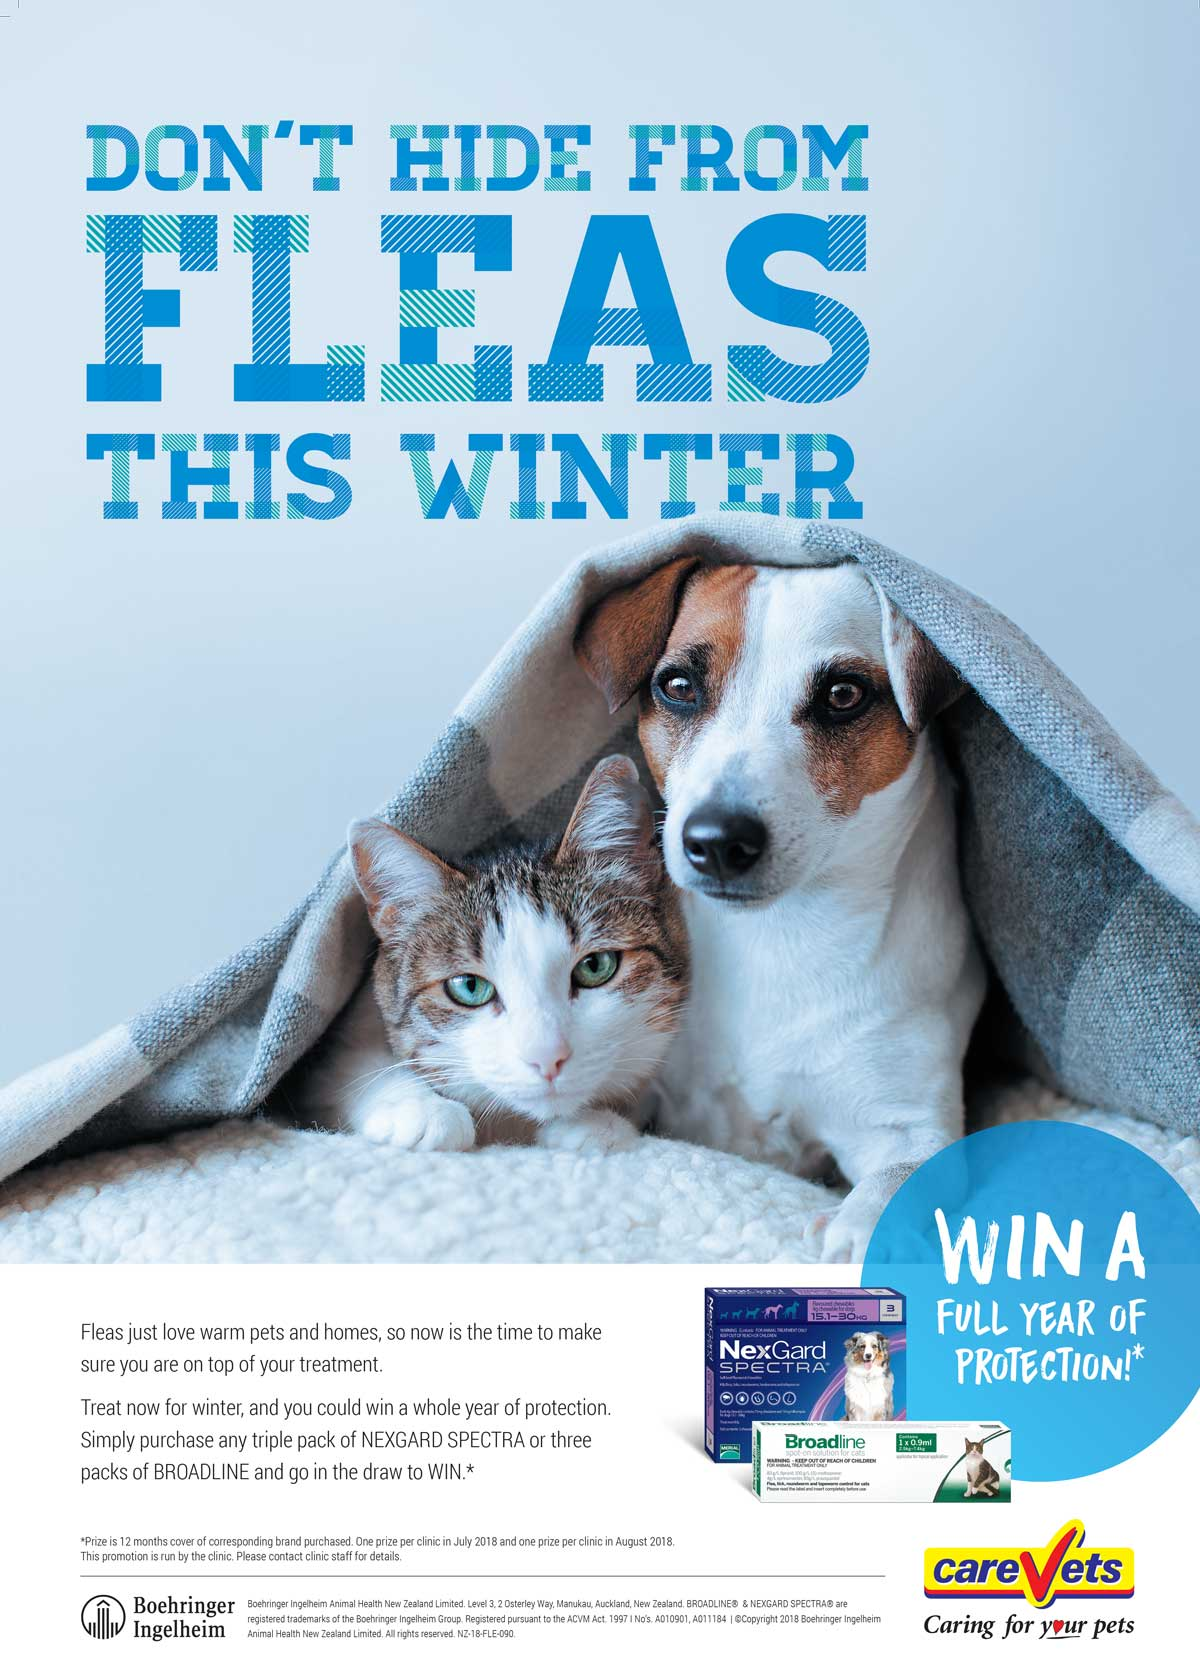 Don't Hide From Fleas This Winter